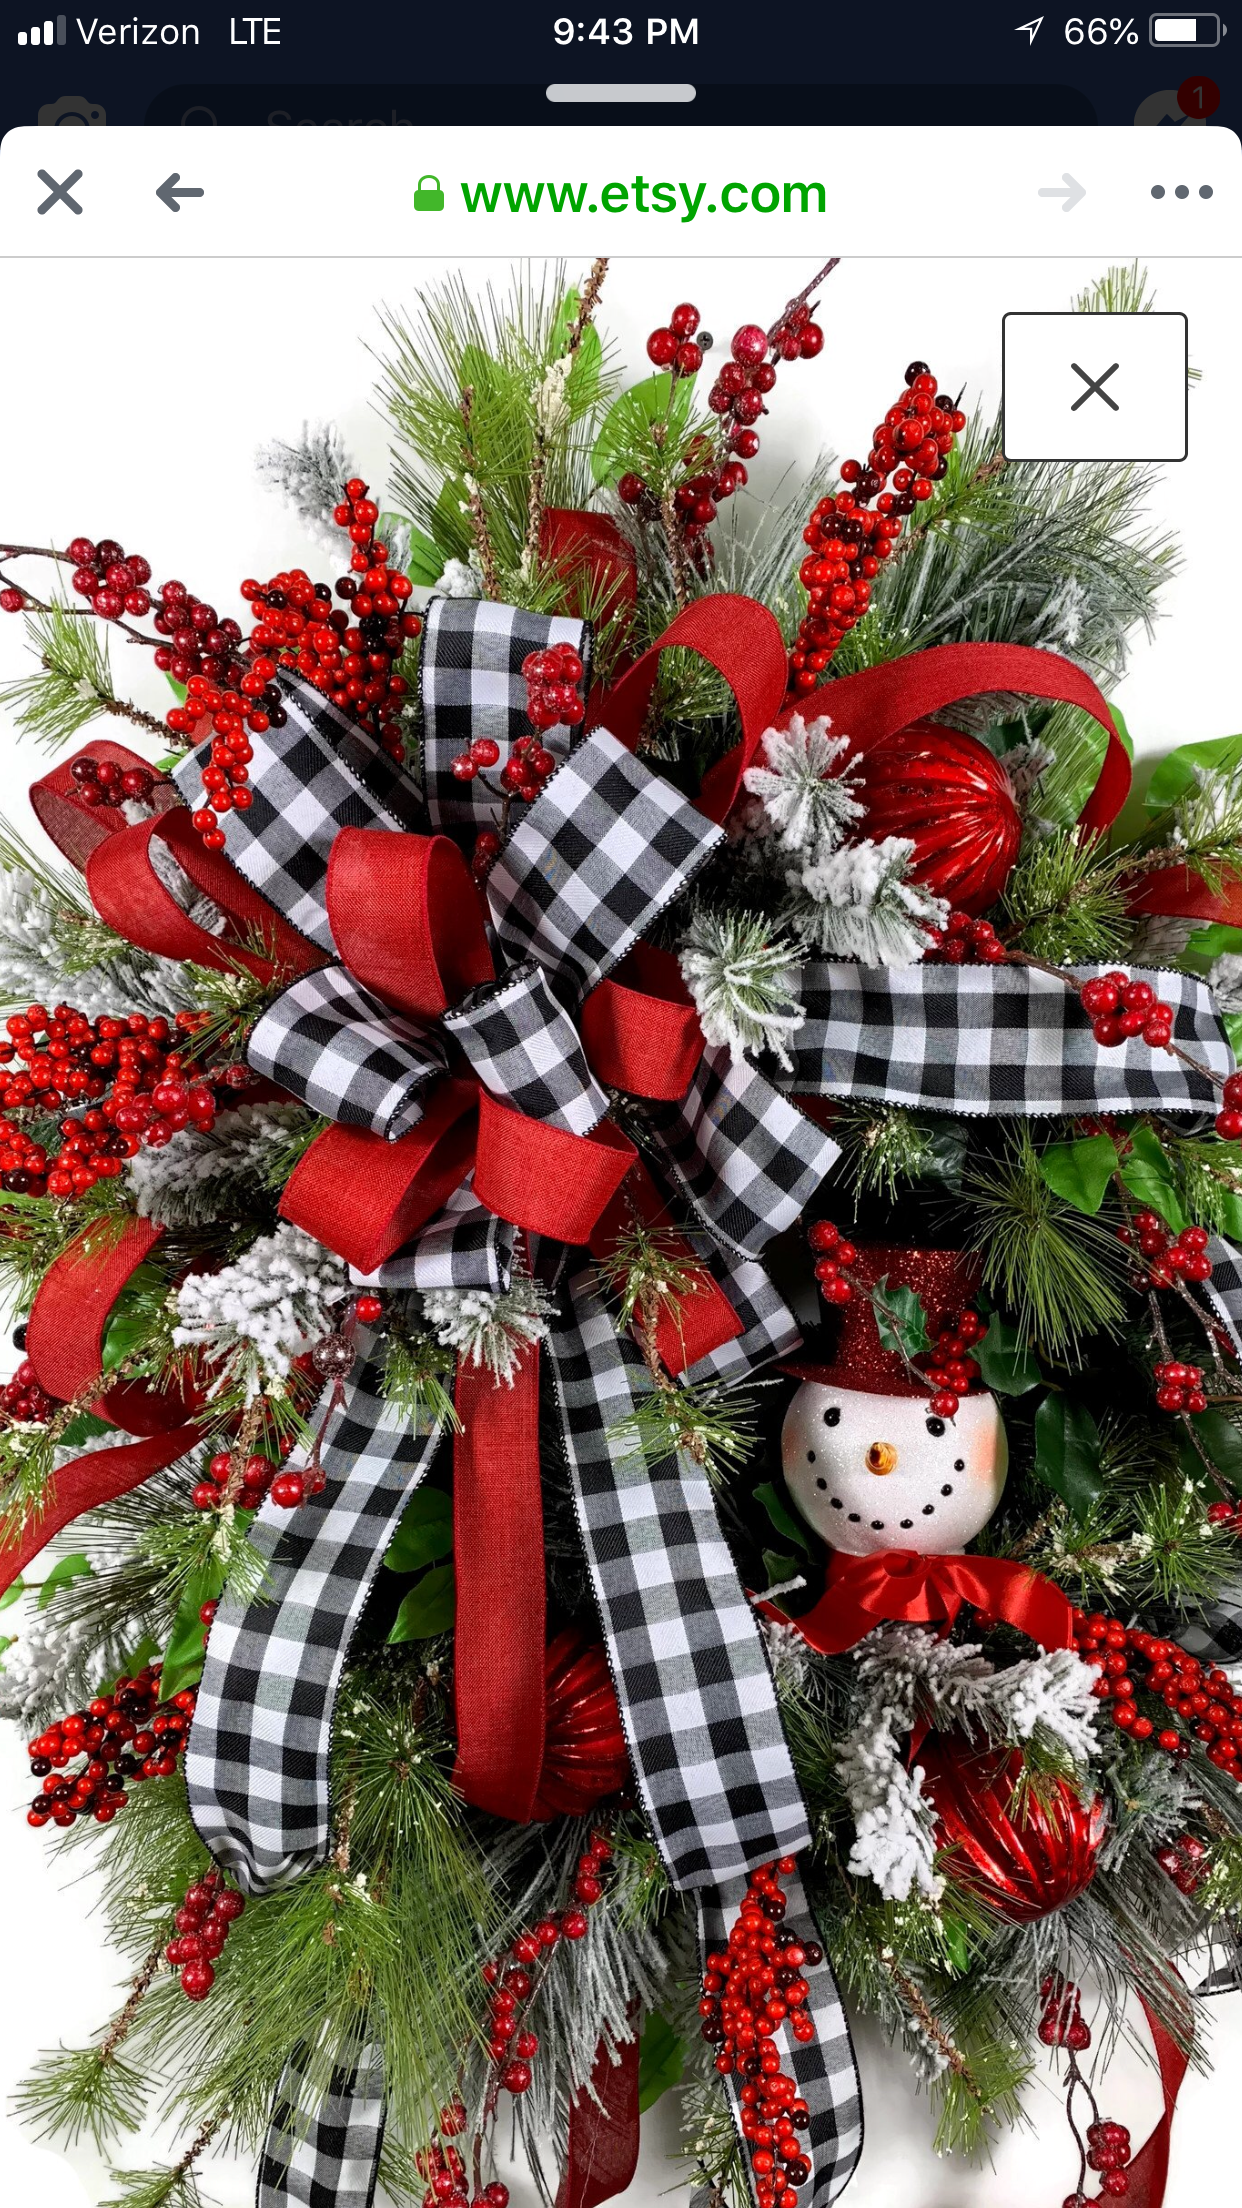 Black And White Gingham With Solid Red For A Twist On Buffalo Check Christmas Wreaths Diy Christmas Mesh Wreaths Plaid Christmas Decor